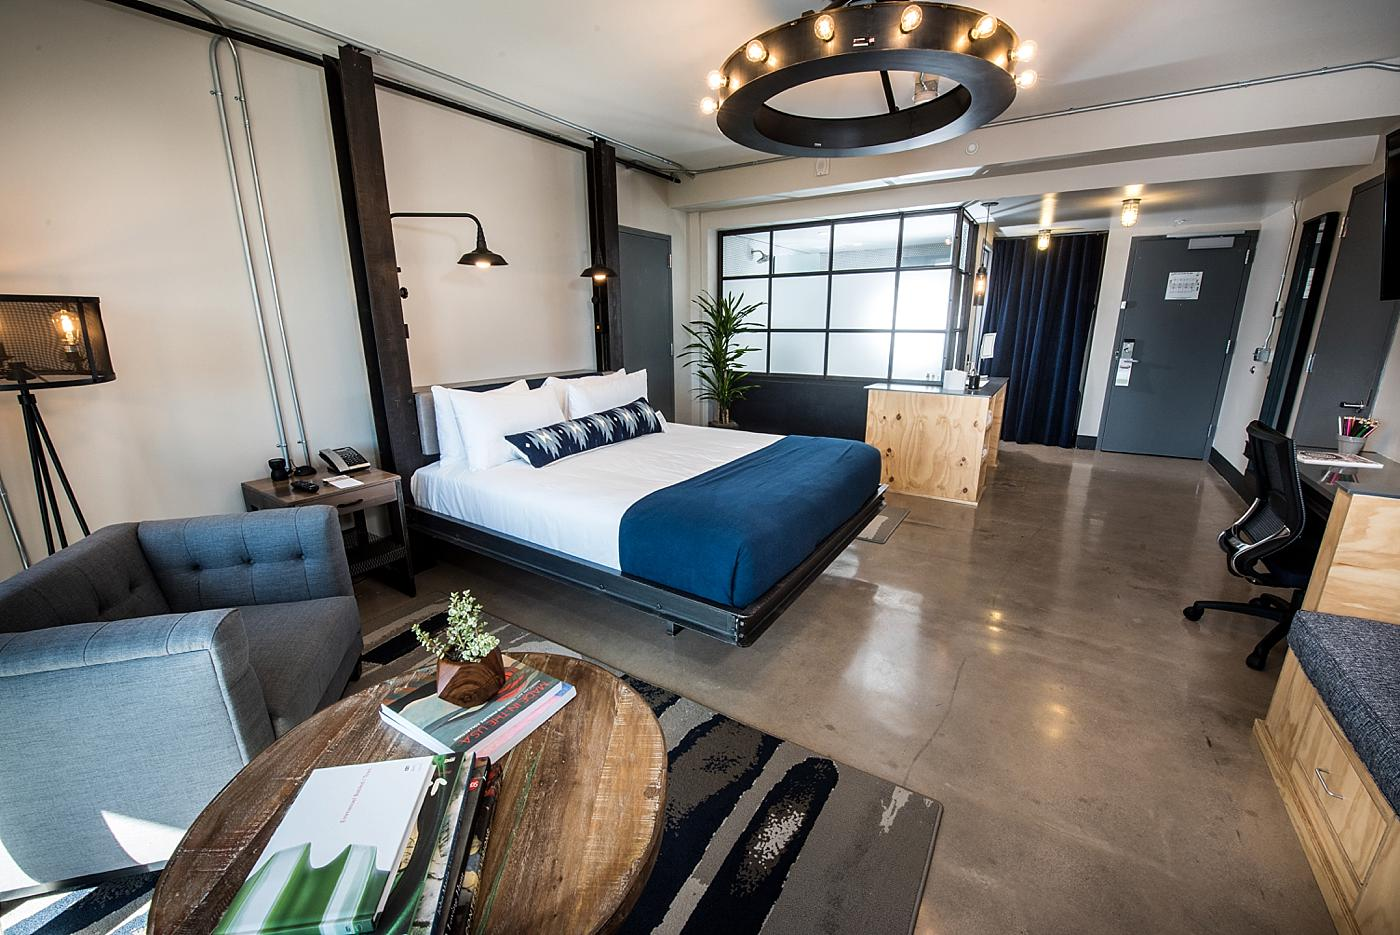 0043-foundre-phoenix-hotel-commercial-photography-2016ther2studio